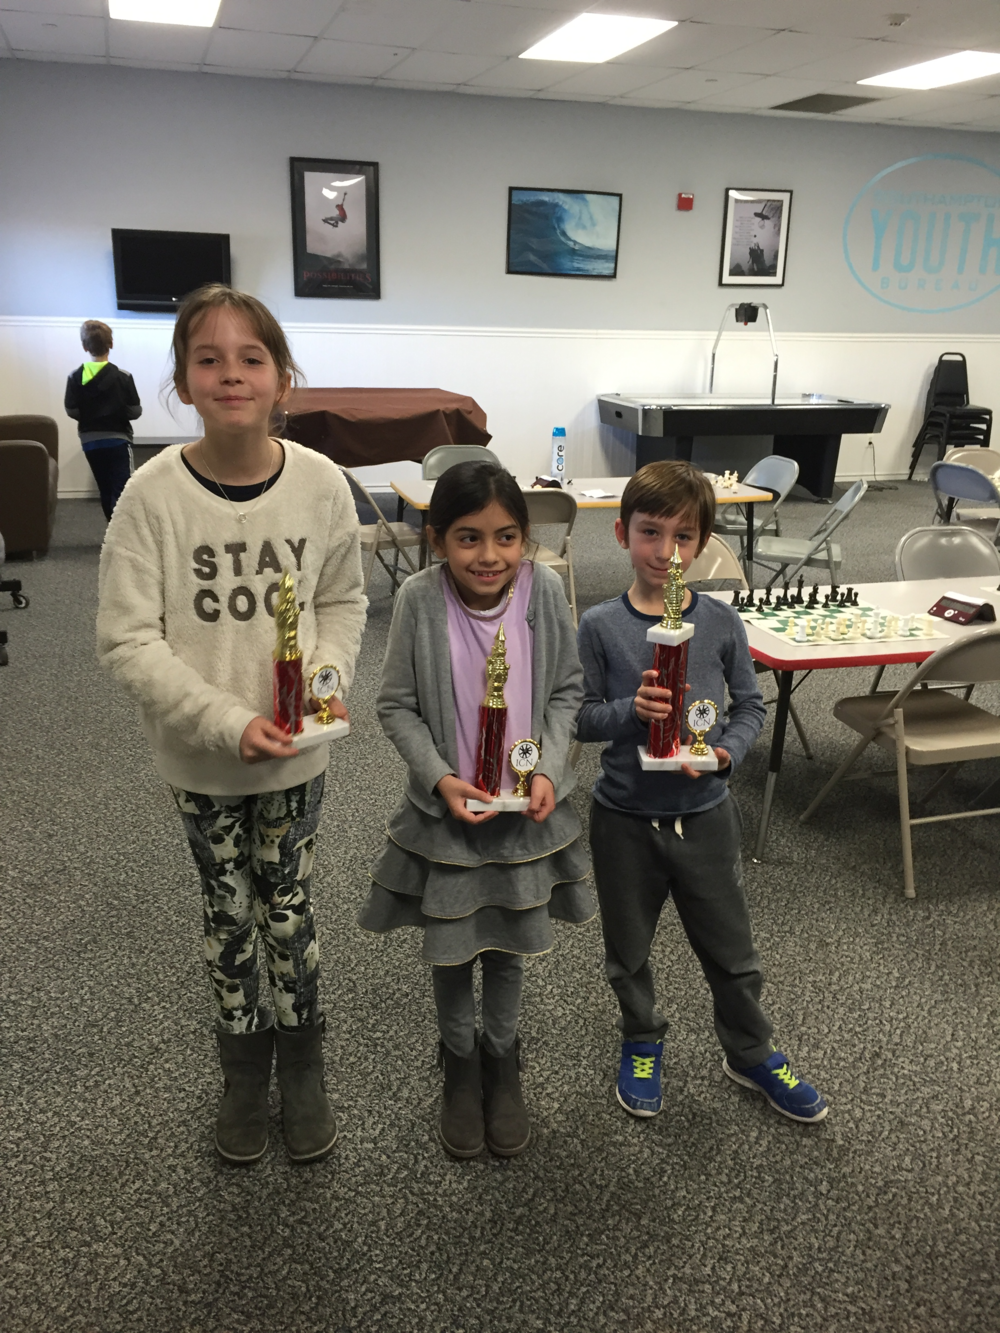 Congrats to our three trophy winners, Mahe (1st), Ilana (2nd) and Joy (3rd)!